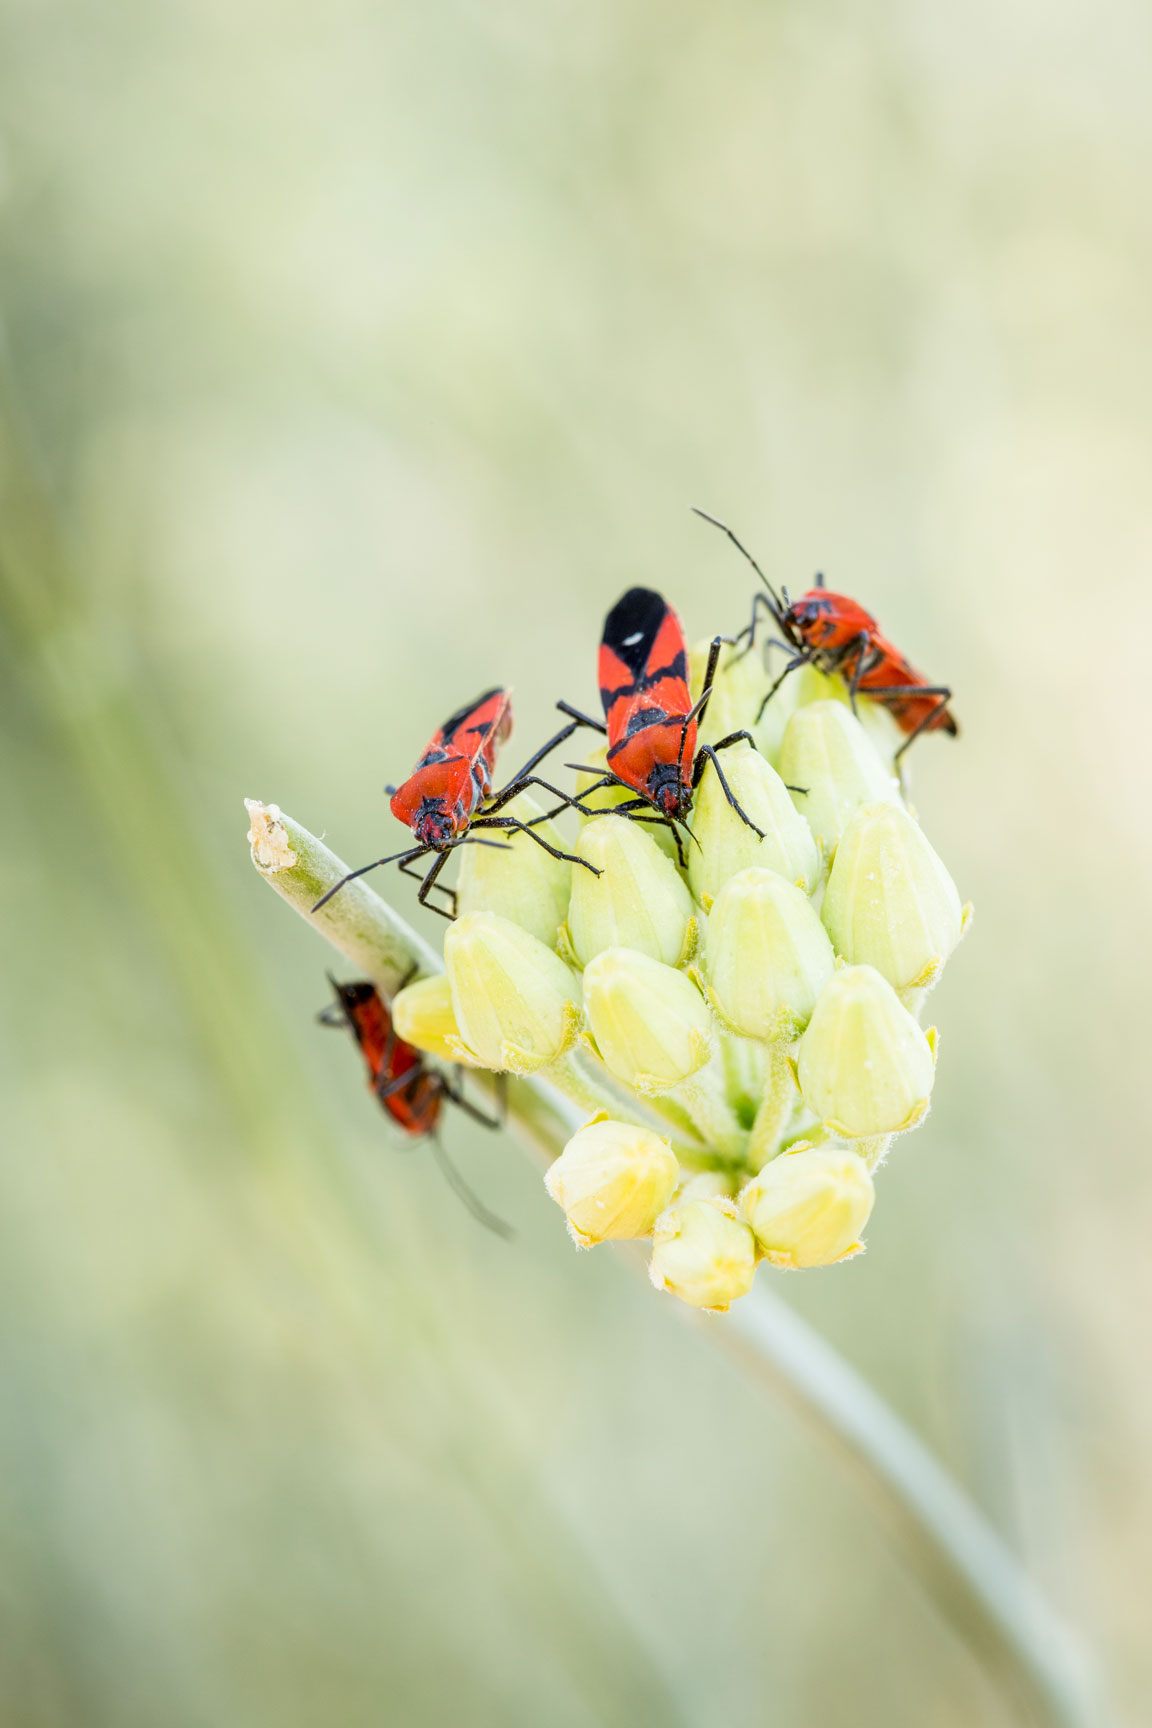 Red and black Milkweed bugs on the flowers of the Desert Milkweed.